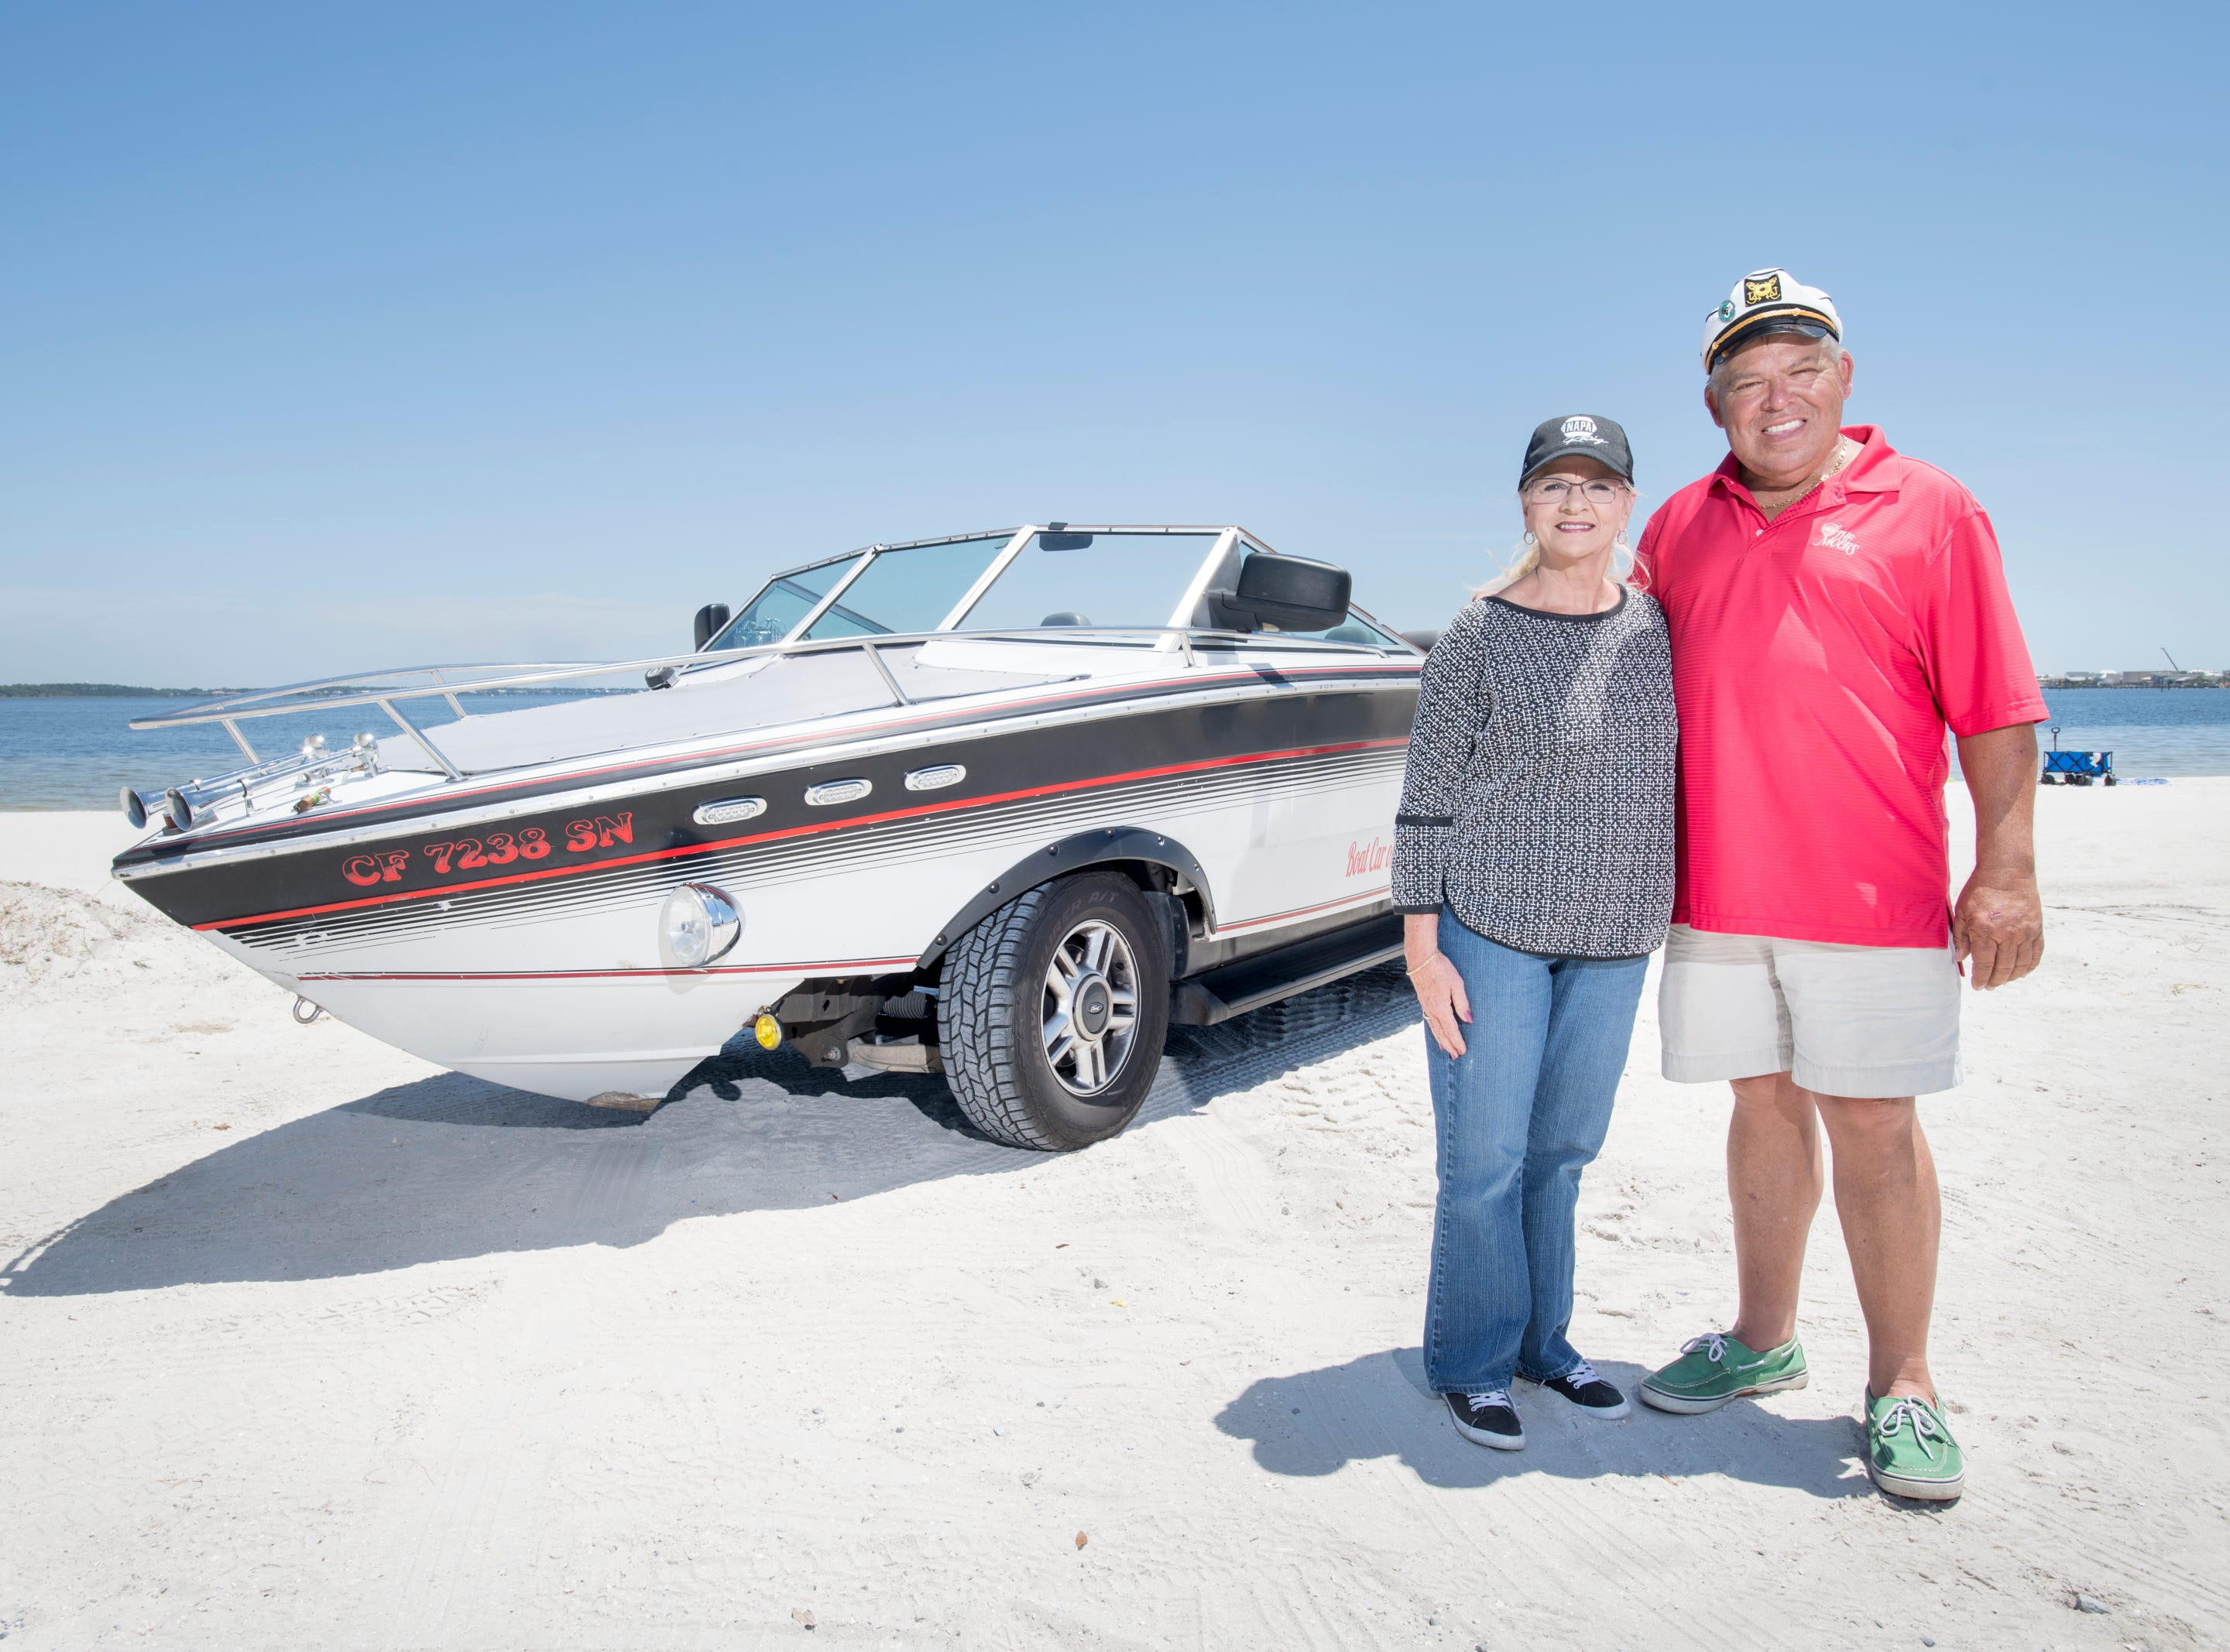 Gerry and Karen Moore cruise alongside their Boat Car in Pensacola on Tuesday, May 7, 2019.  The vehicle is a 1986 Chris Craft 210 Scorpion boat - 2003 Ford Expedition SUV hybrid created by Gerry.